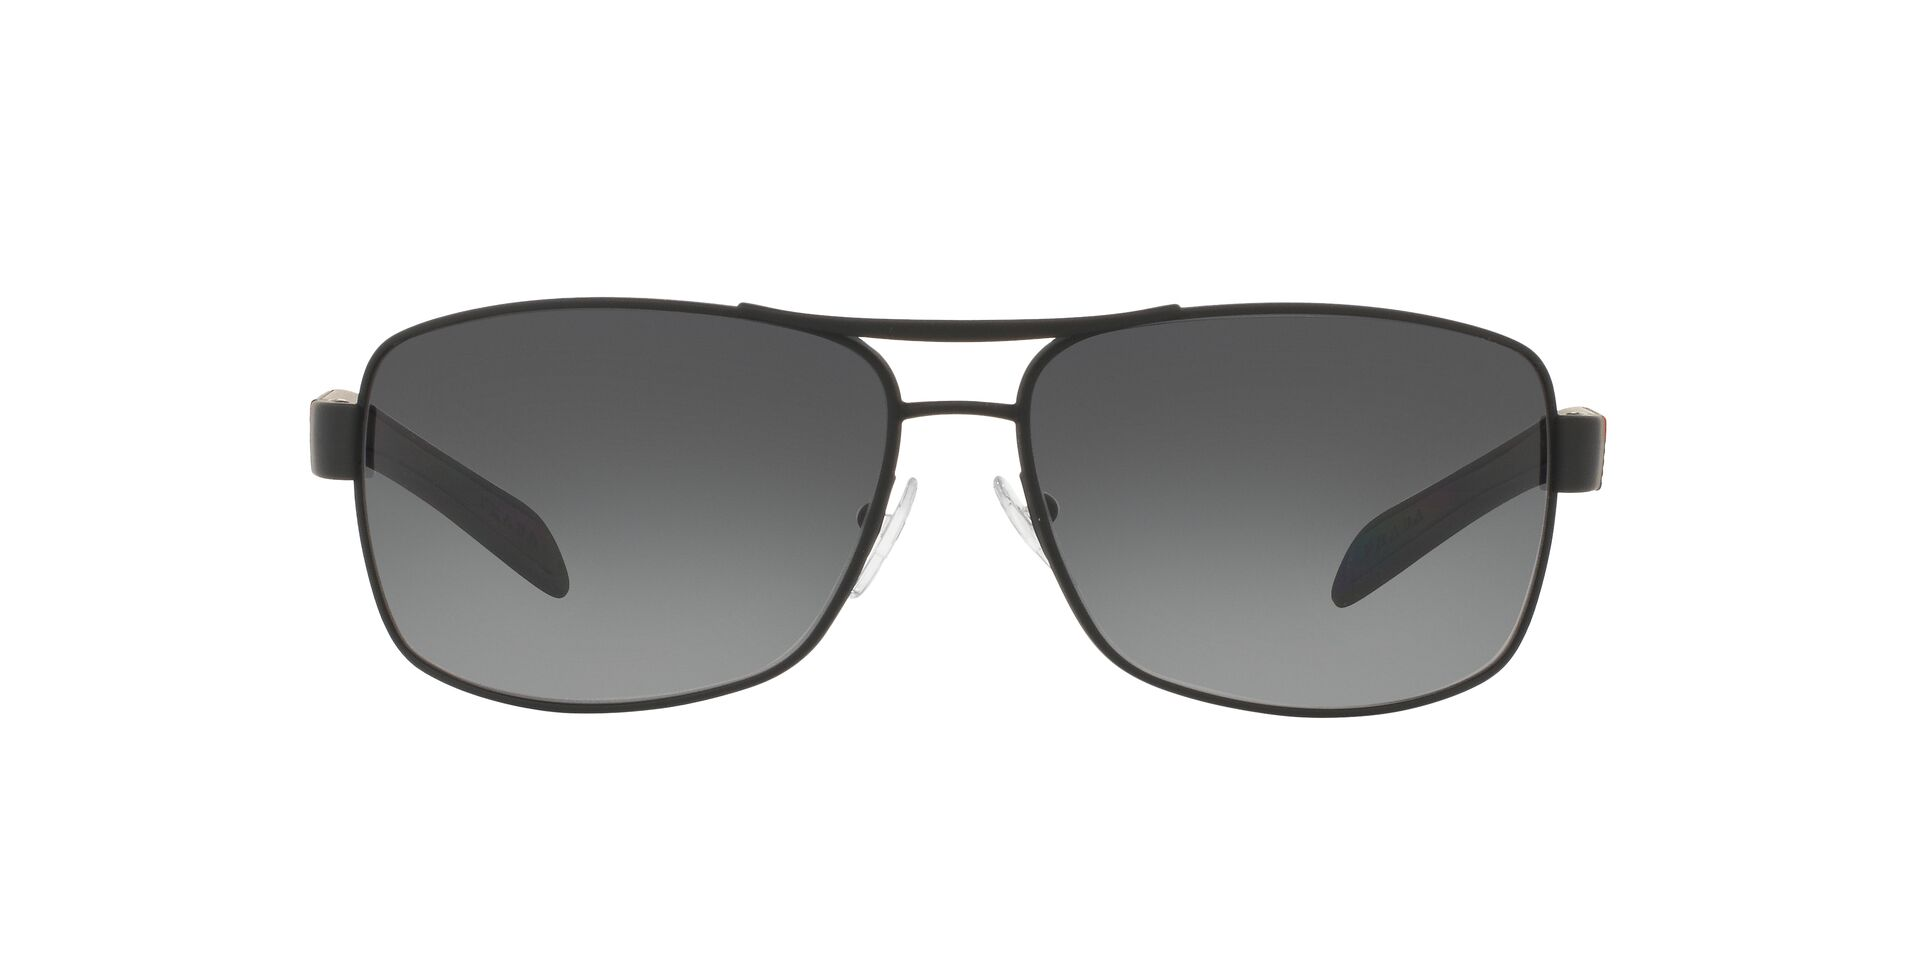 Prada Sport - PS54IS Black Rectangular Men Sunglasses - 65mm-Sunglasses-Designer Eyes